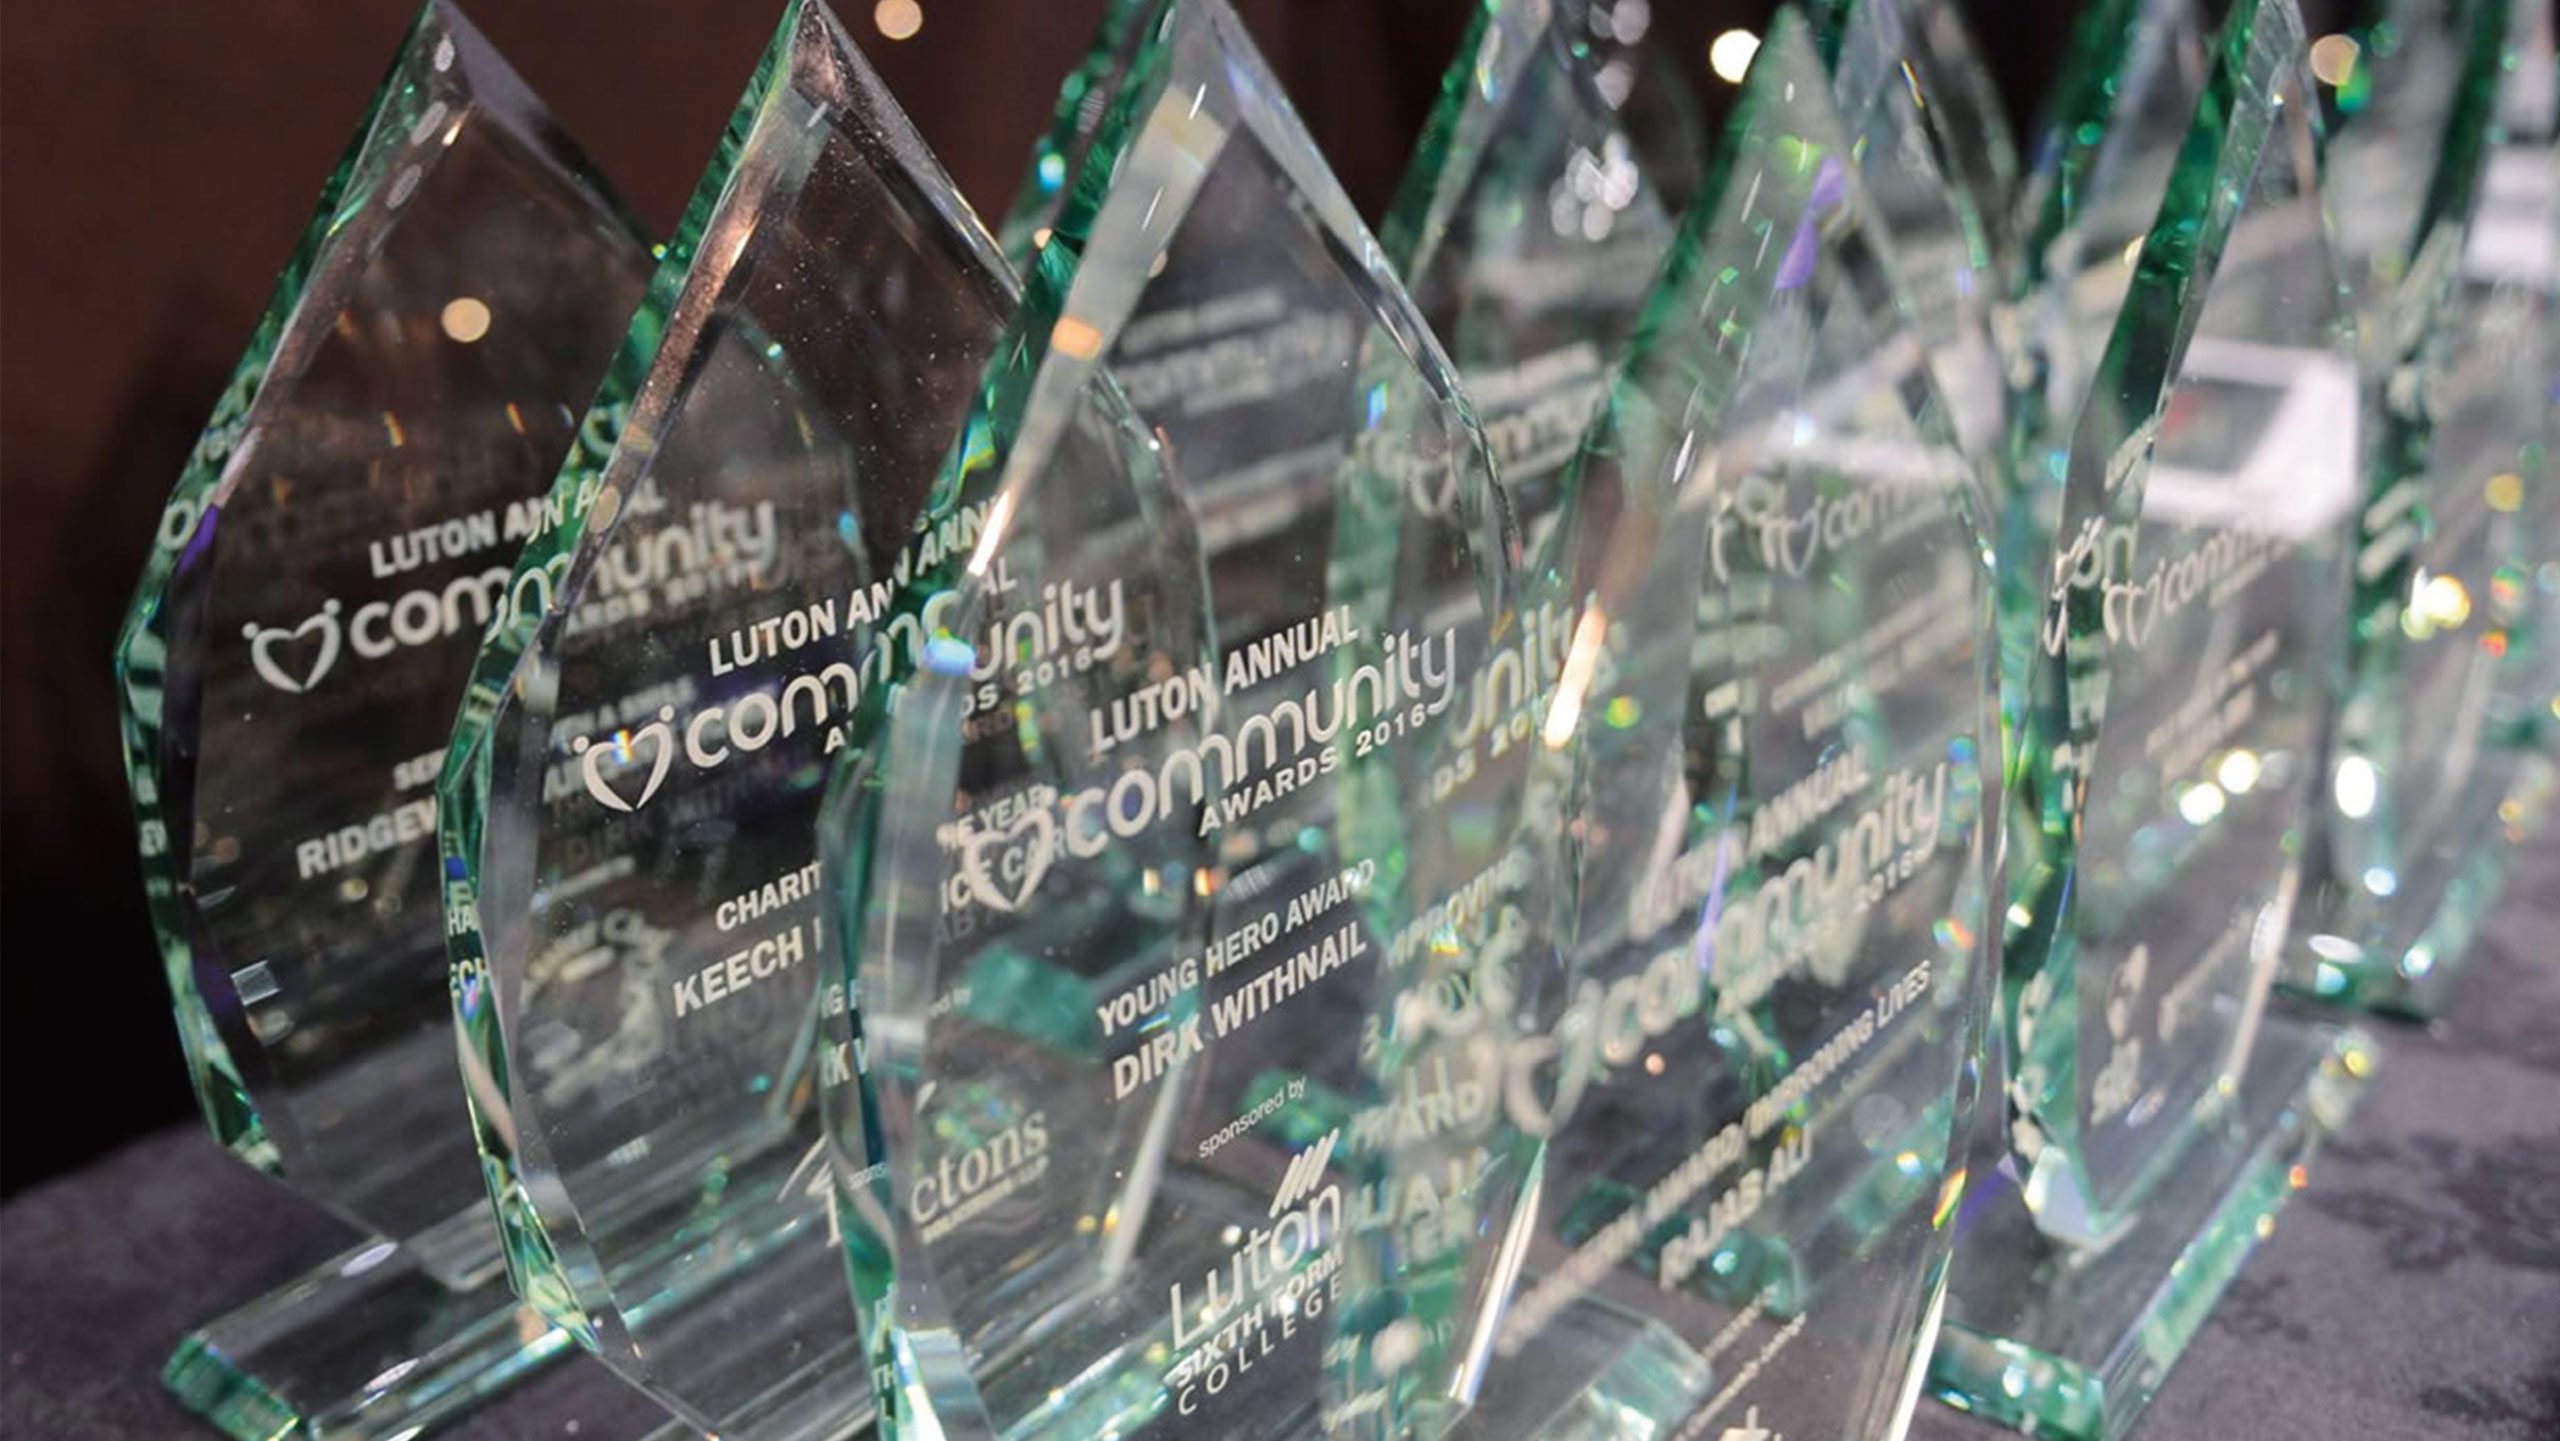 image of glass trophies from last years community awards